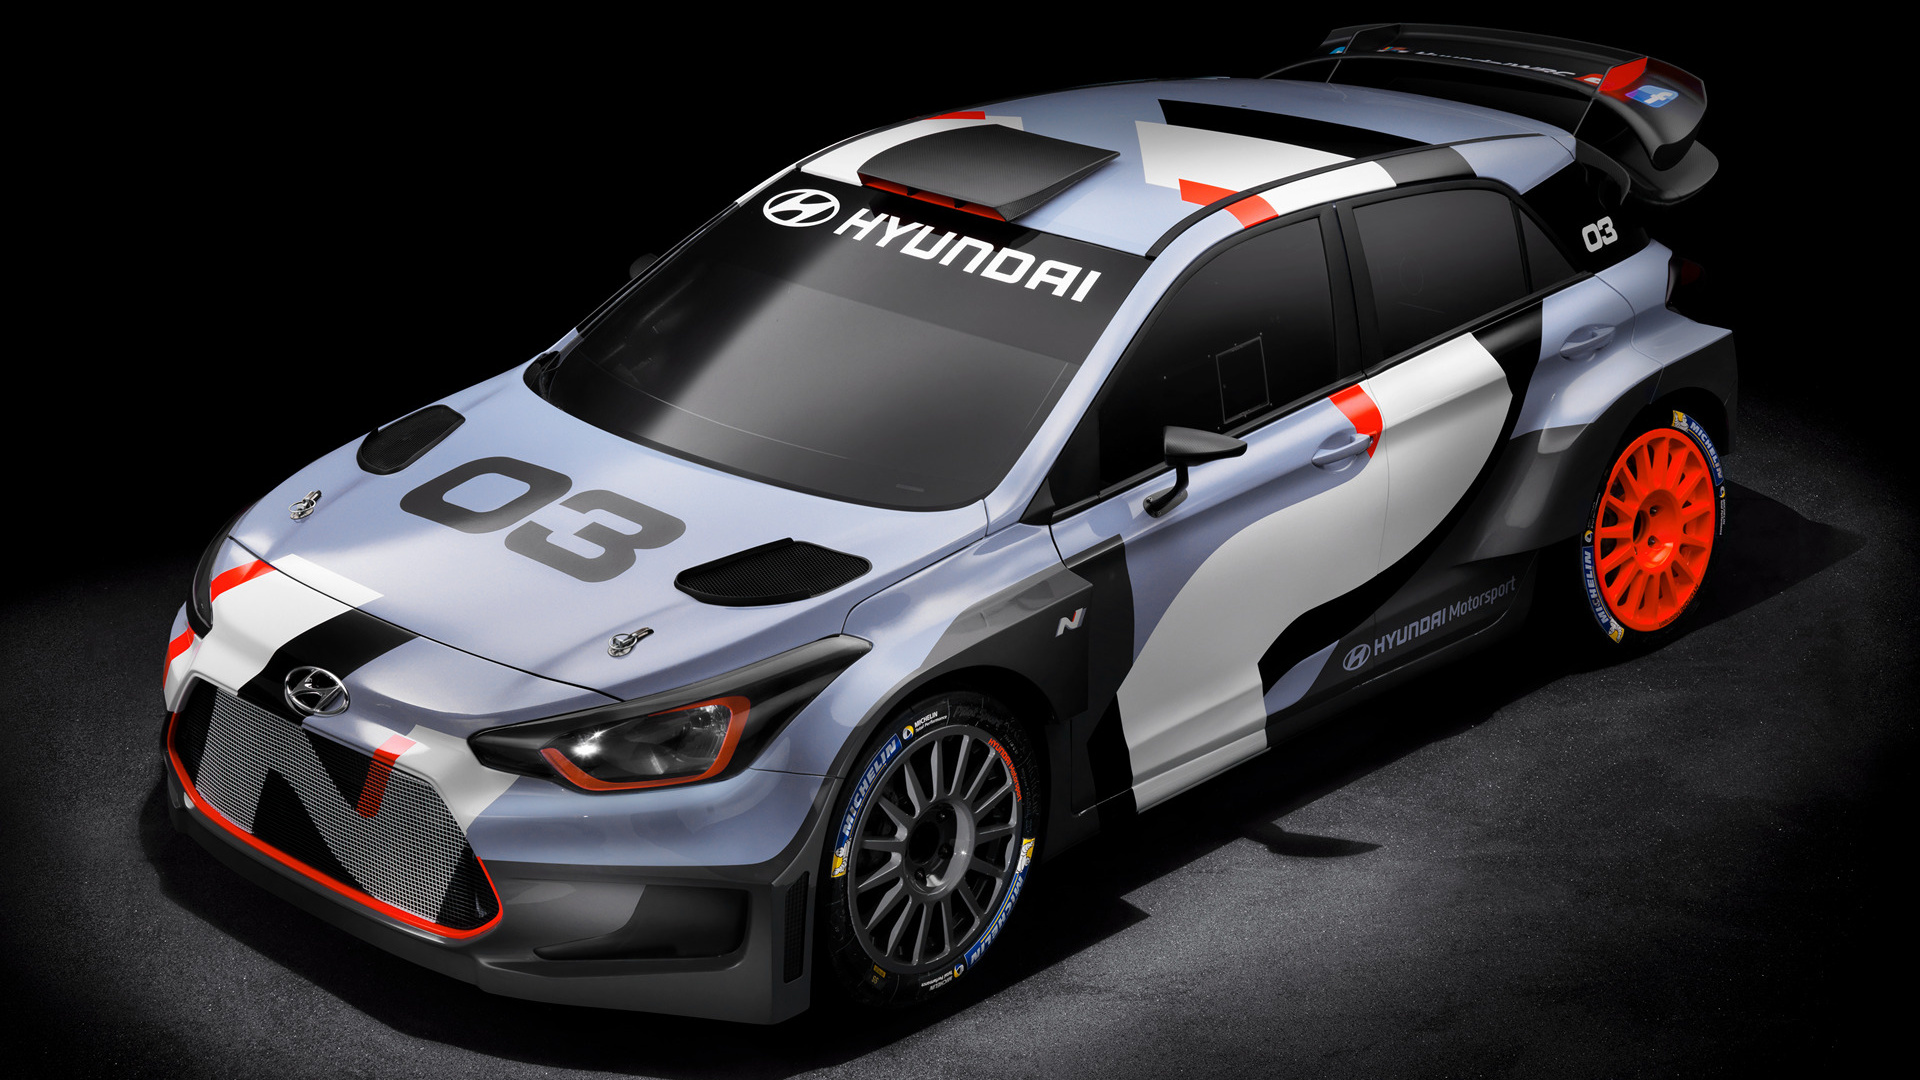 2015 Hyundai i20 WRC Concept - Wallpapers and HD Images ...